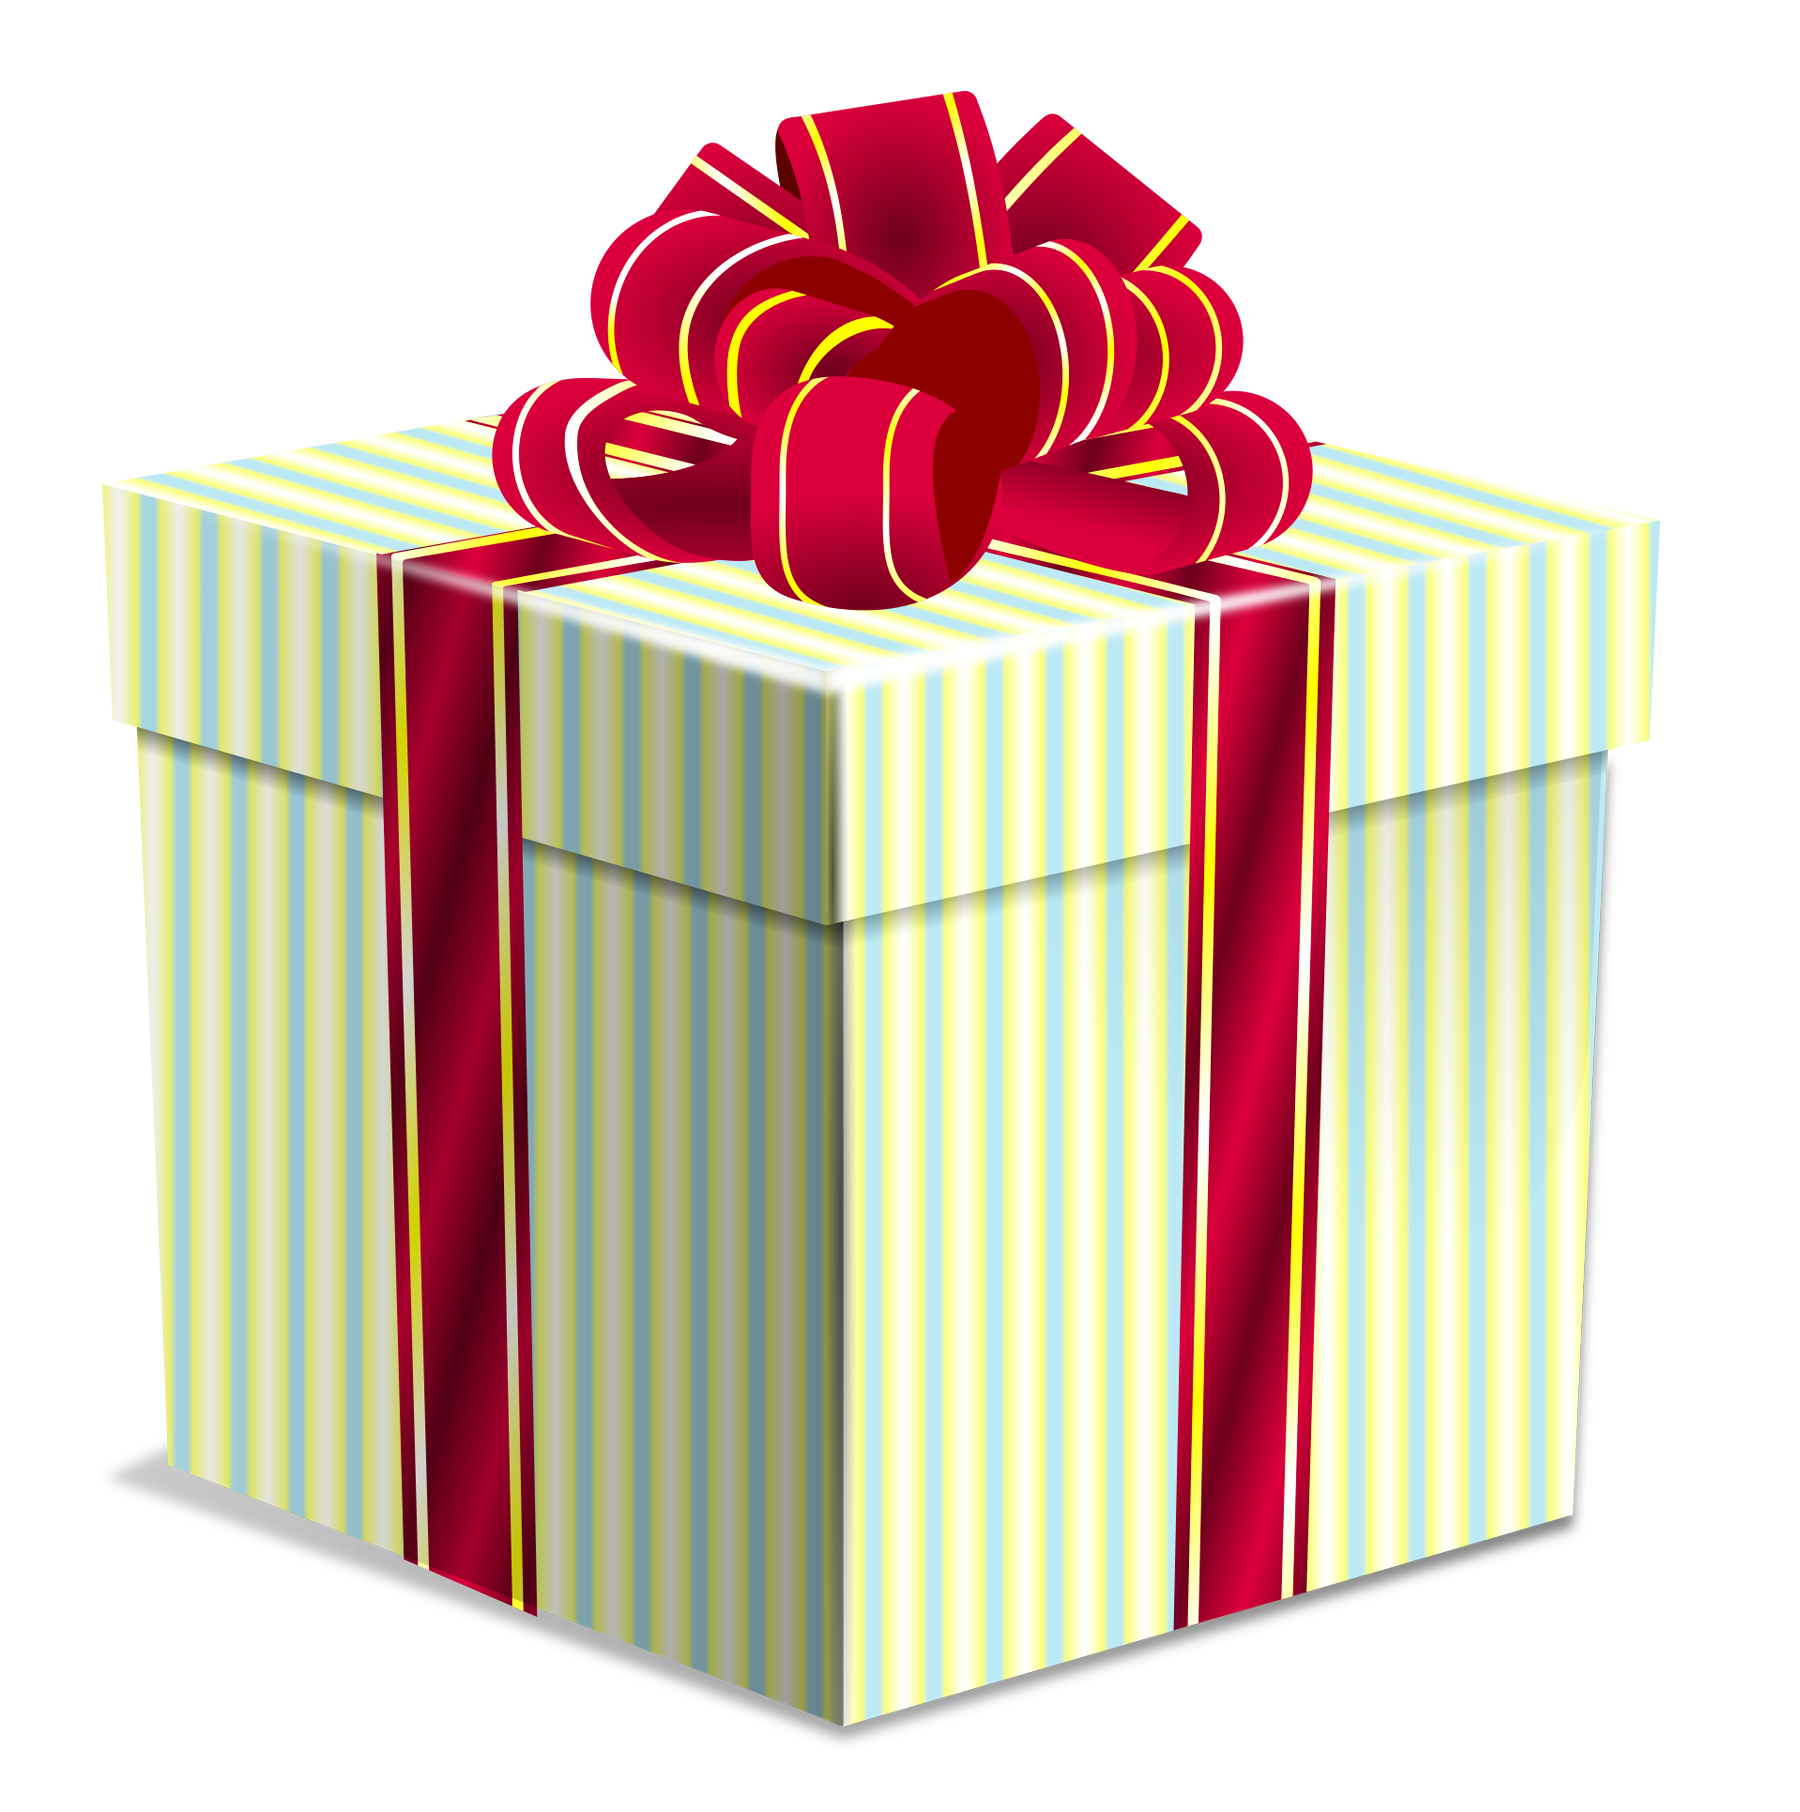 A Gift PNG - 158807